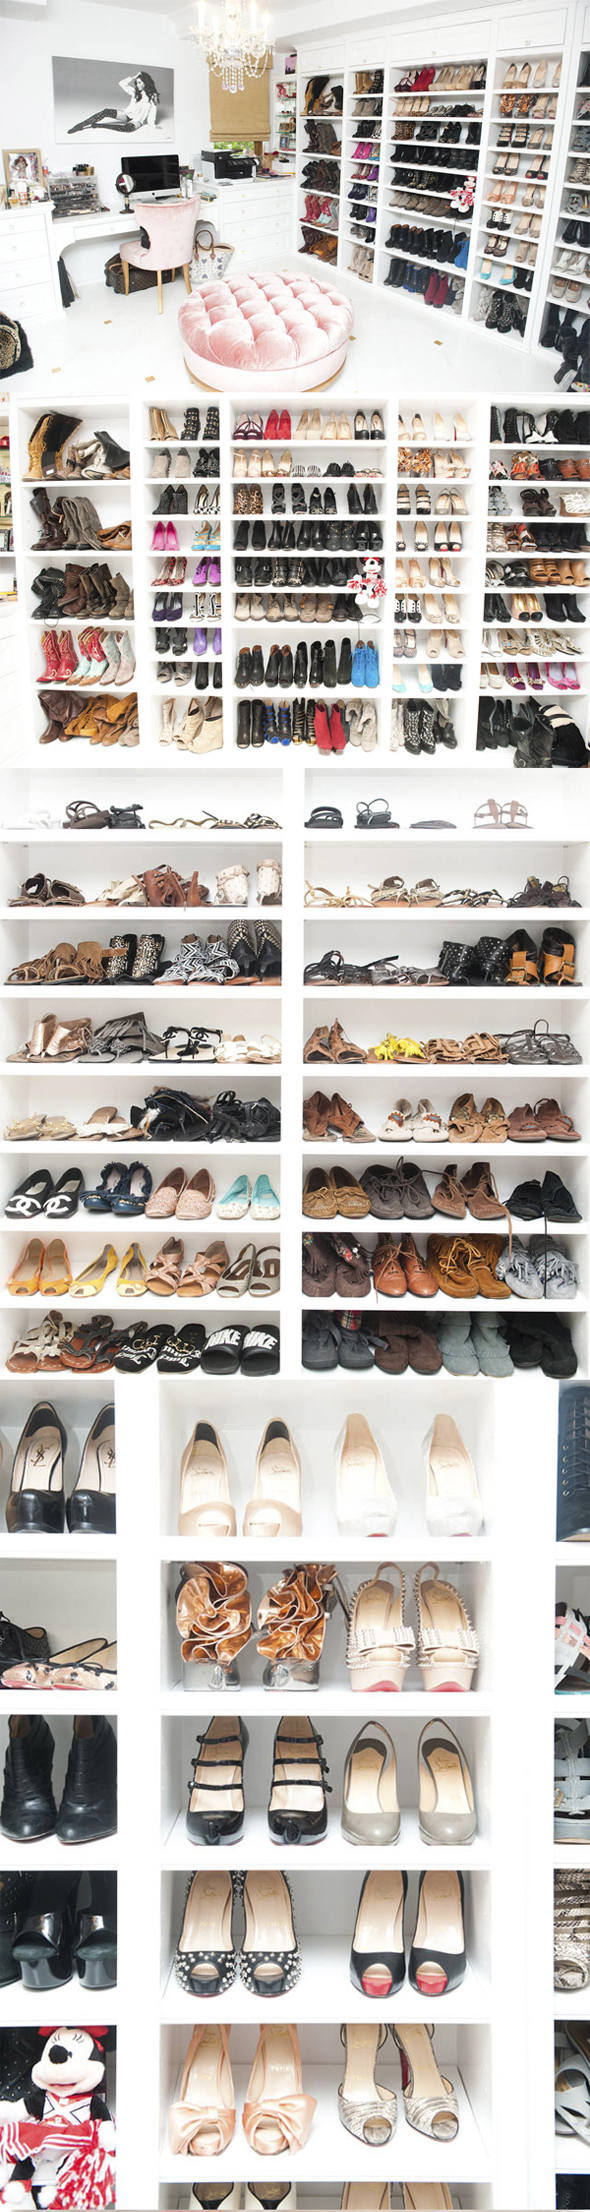 O Closet da Ashley Tisdale